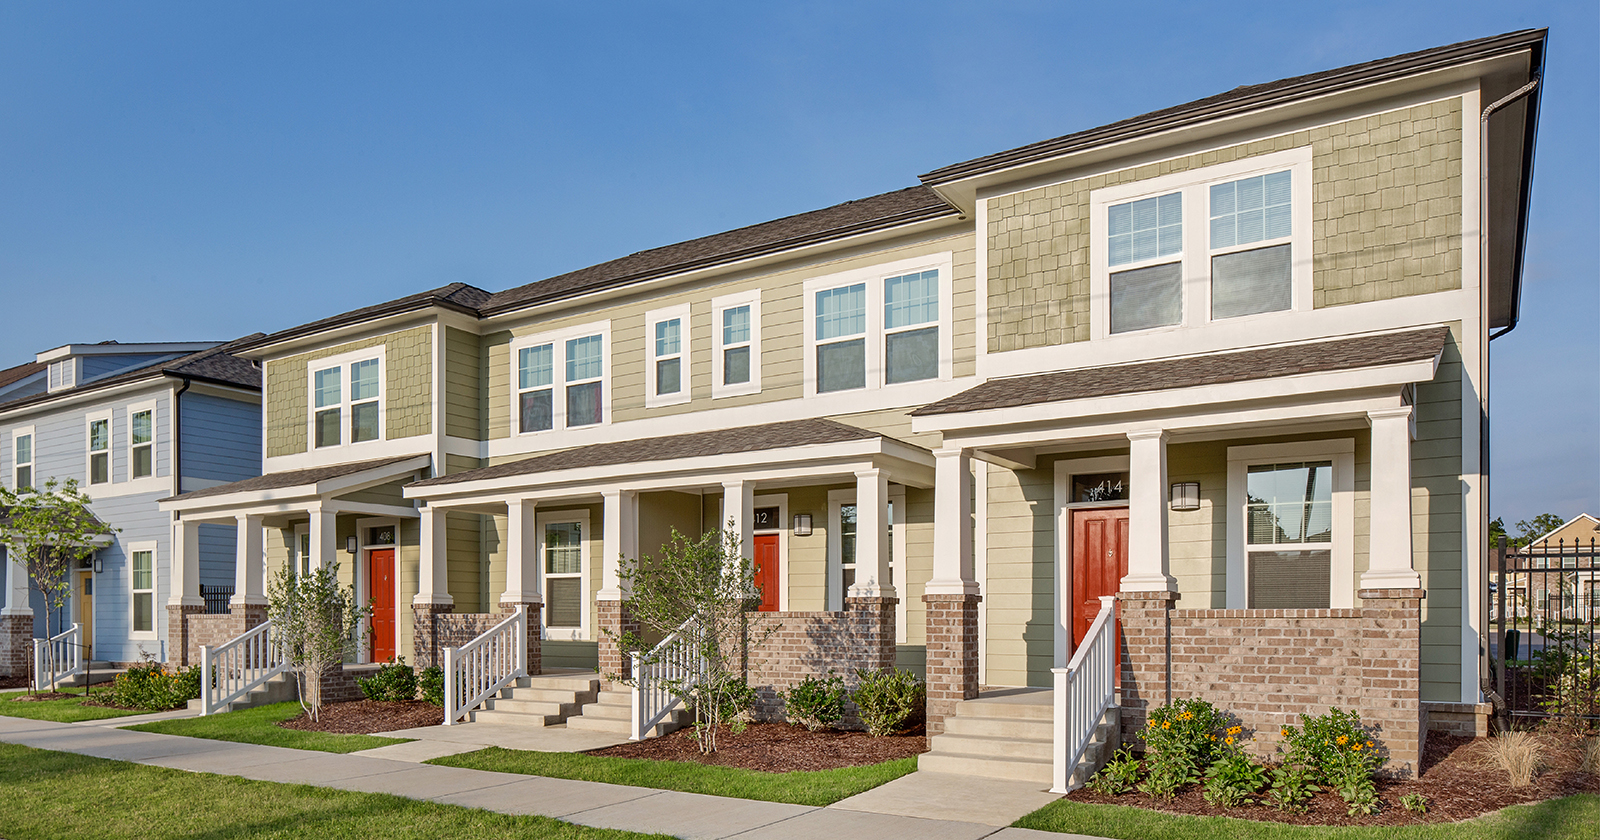 Cleaborn Pointe at Heritage Landing, Memphis, TN